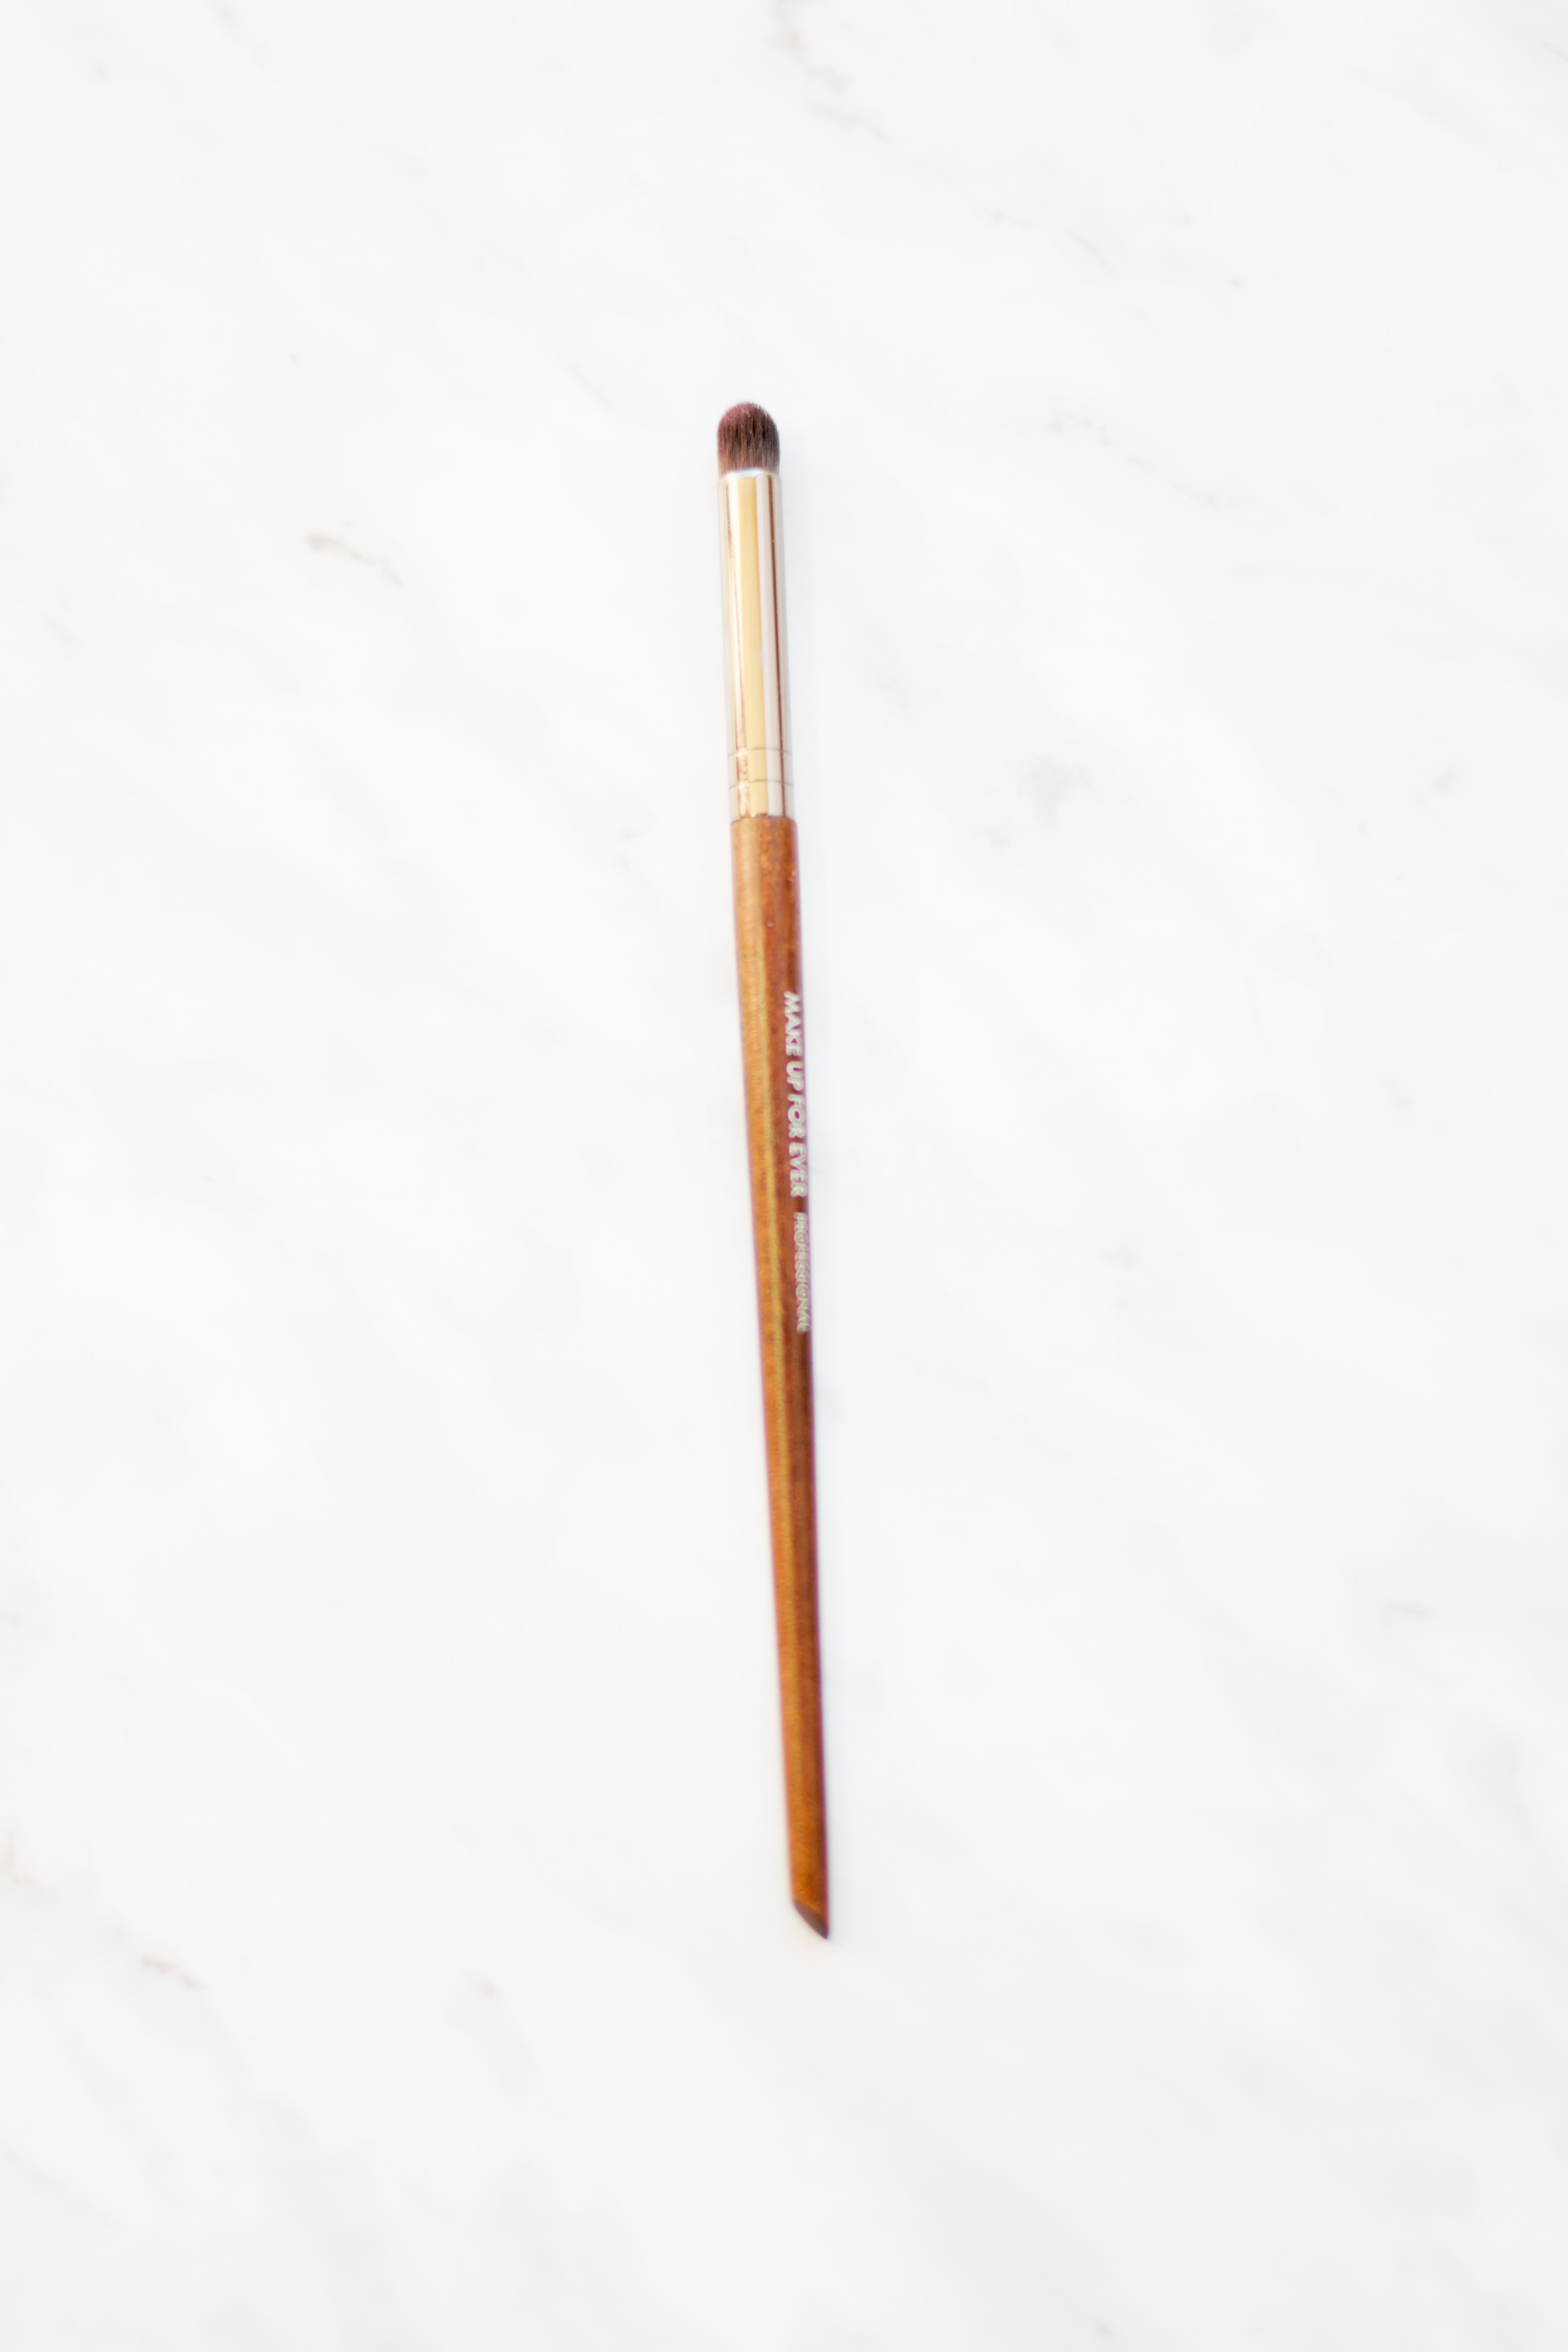 Make Up For Ever brushes - The Savior